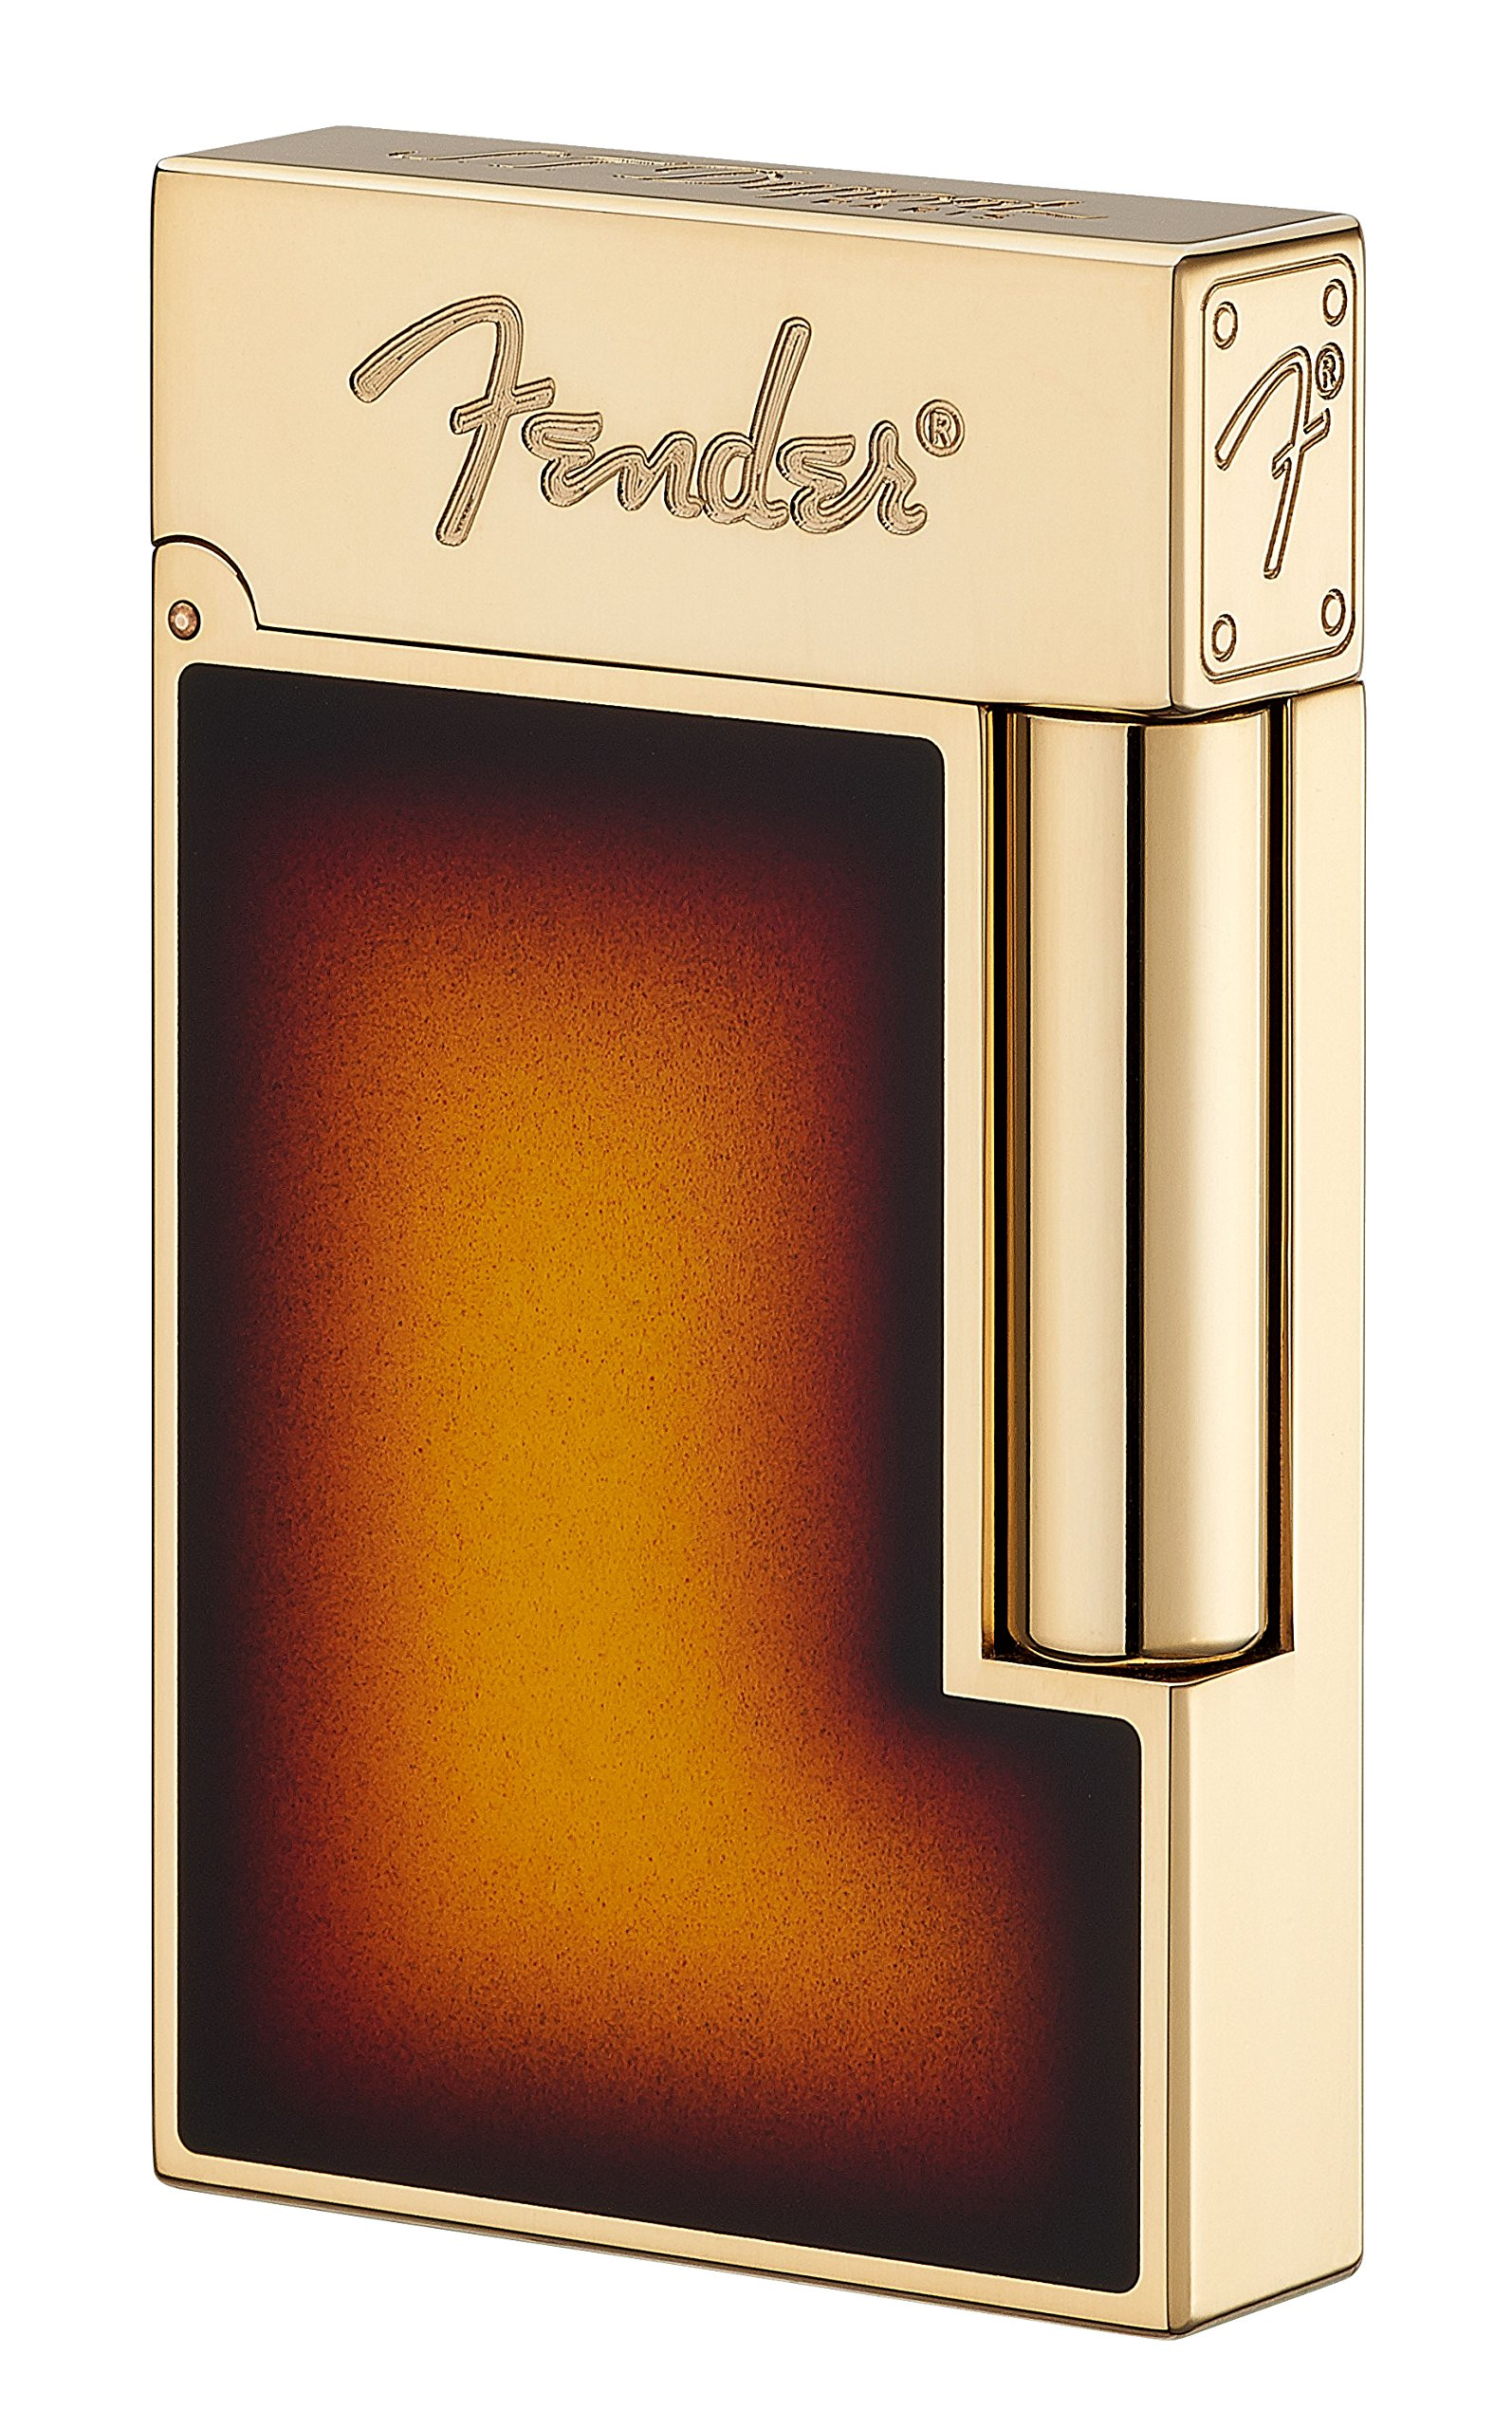 Fender Natural Lacquer Lighter in Gold Finish Line 2 by S.T. Dupont (Image #1)